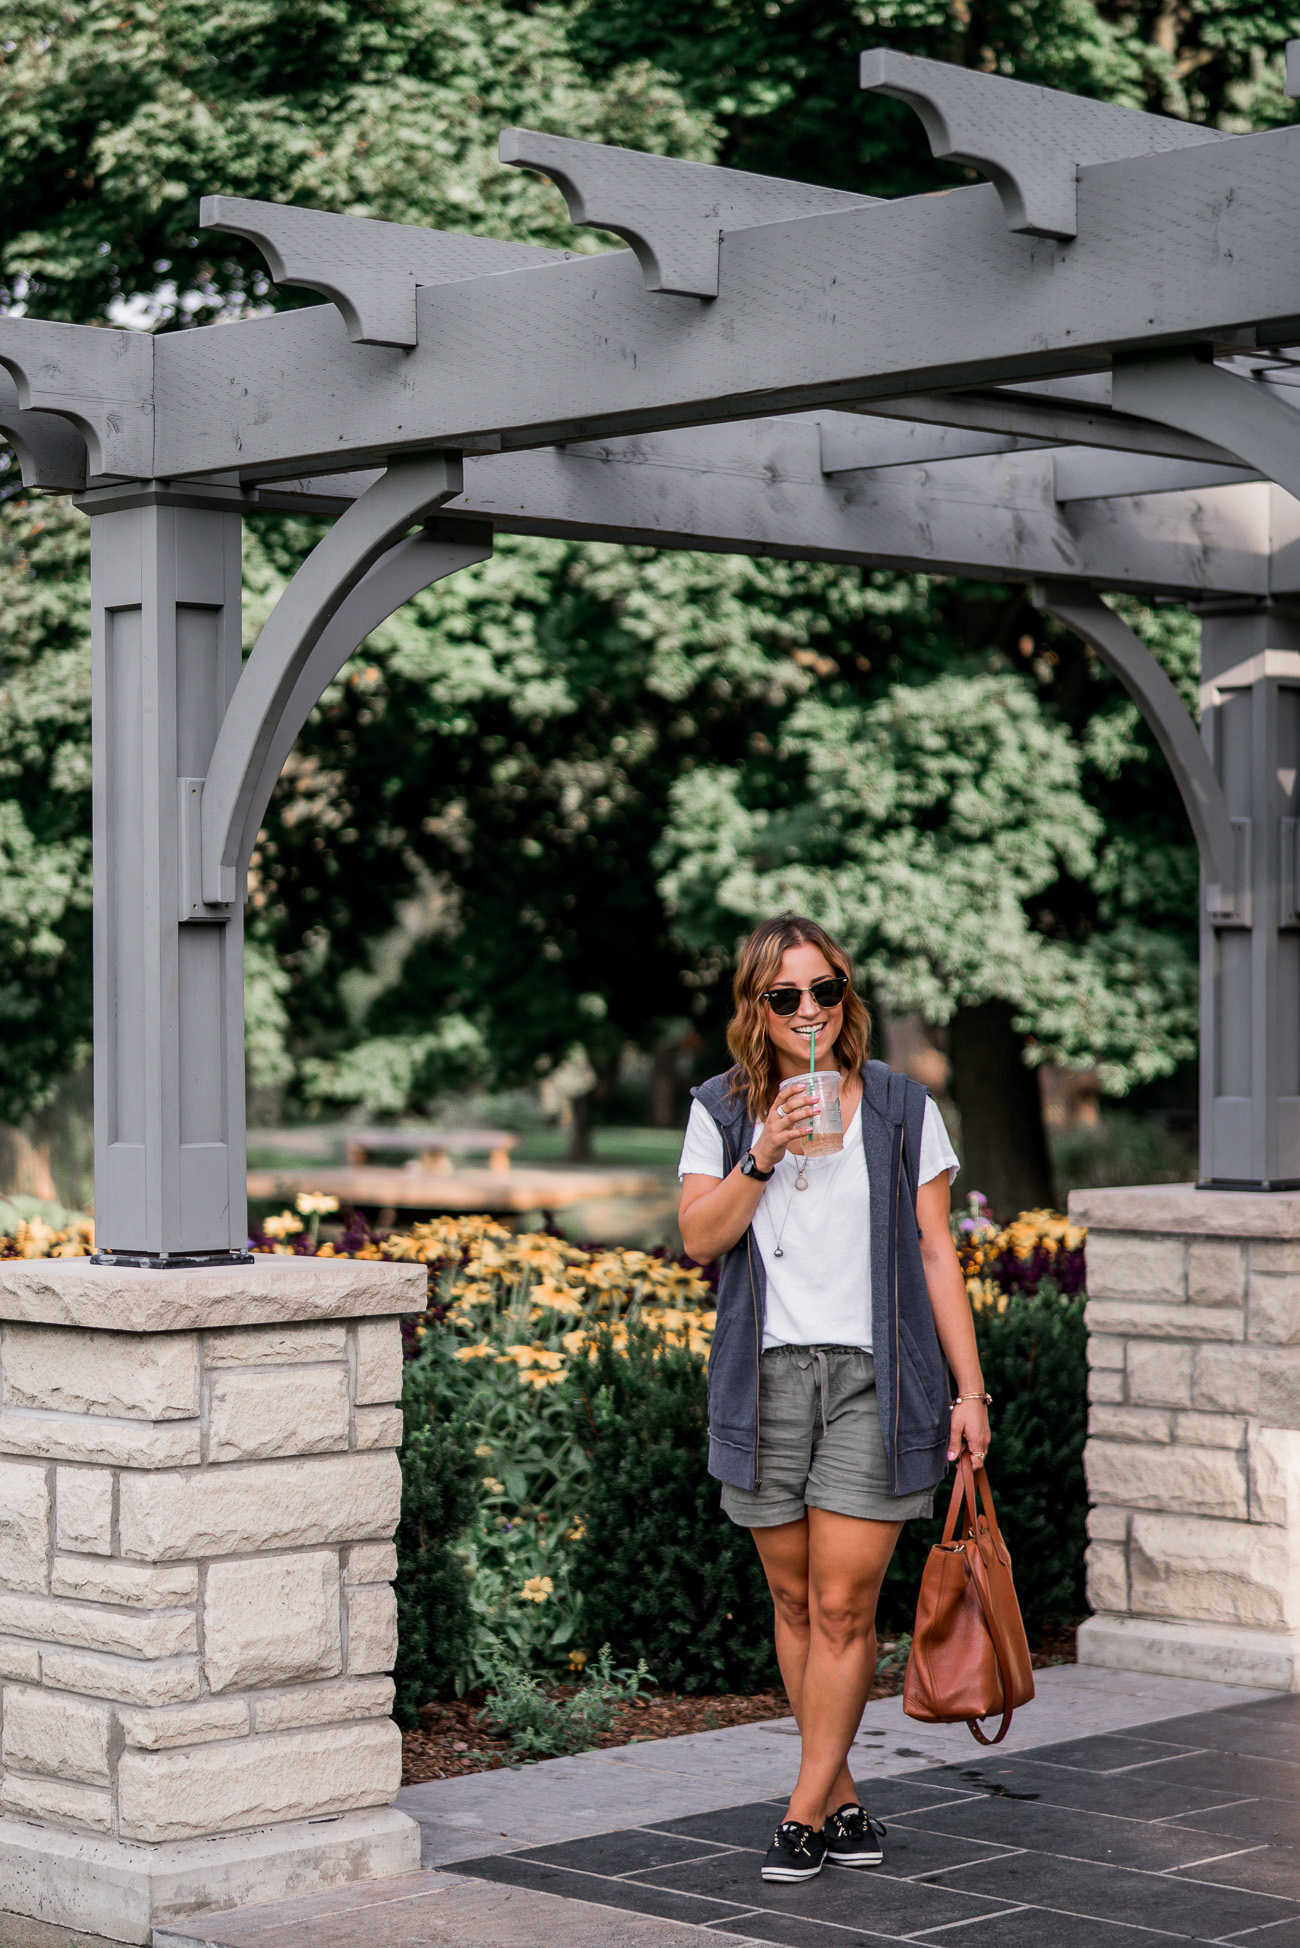 Jackie Goldhar is a Toronto-based lifestyle blogger, from Something About That, wearing a casual late summer outfit